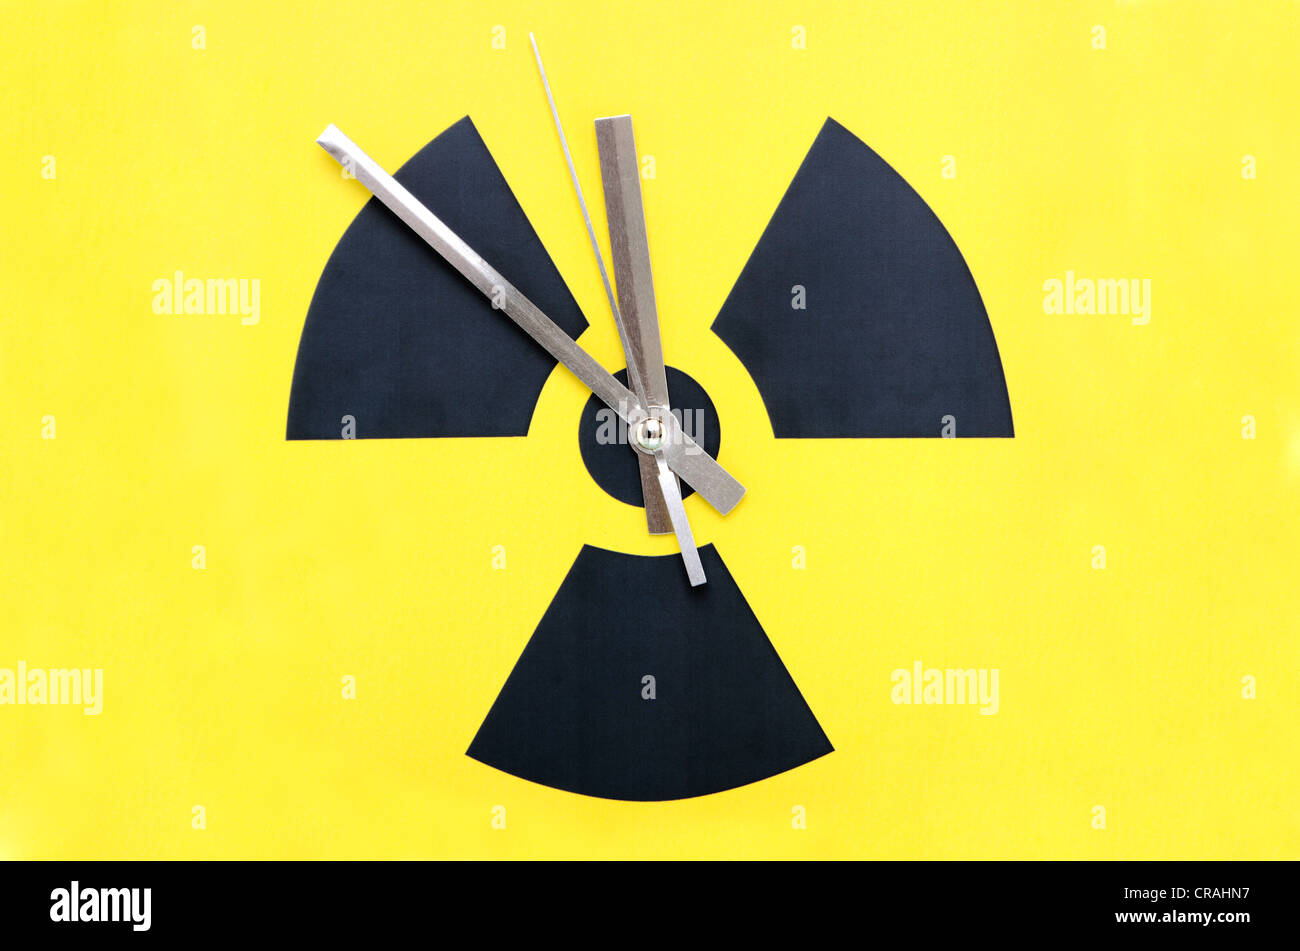 Atomic symbol with clock hands set at 11:55, symbolic image for to phase-out nuclear power - Stock Image